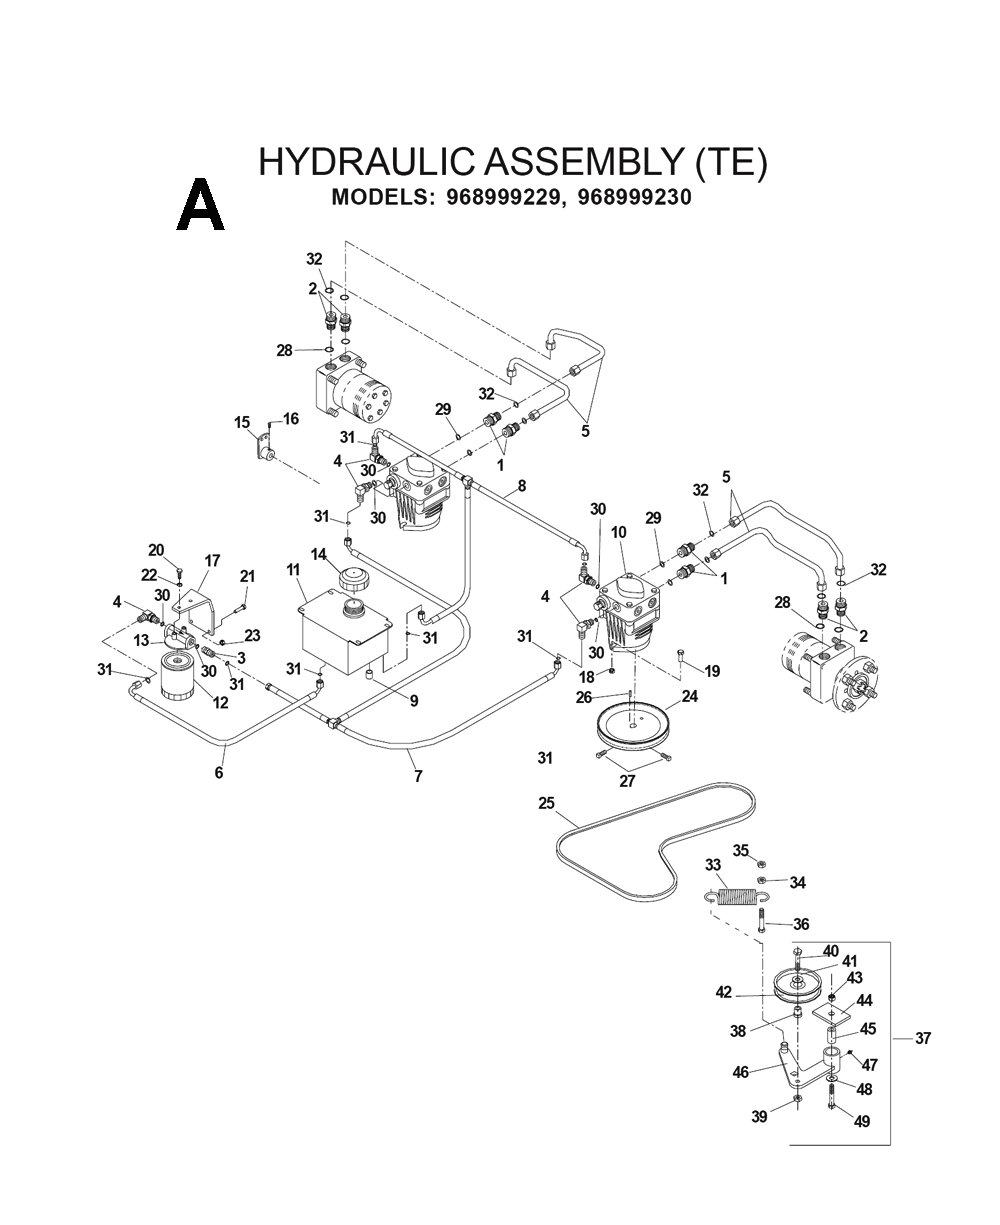 Get 100 Husqvarna Walk Mowers Lc121p Image Turn Parts Diagram Tractor Wiring Buy Iz4817skaa 968999230 Replacement Tool Schematic